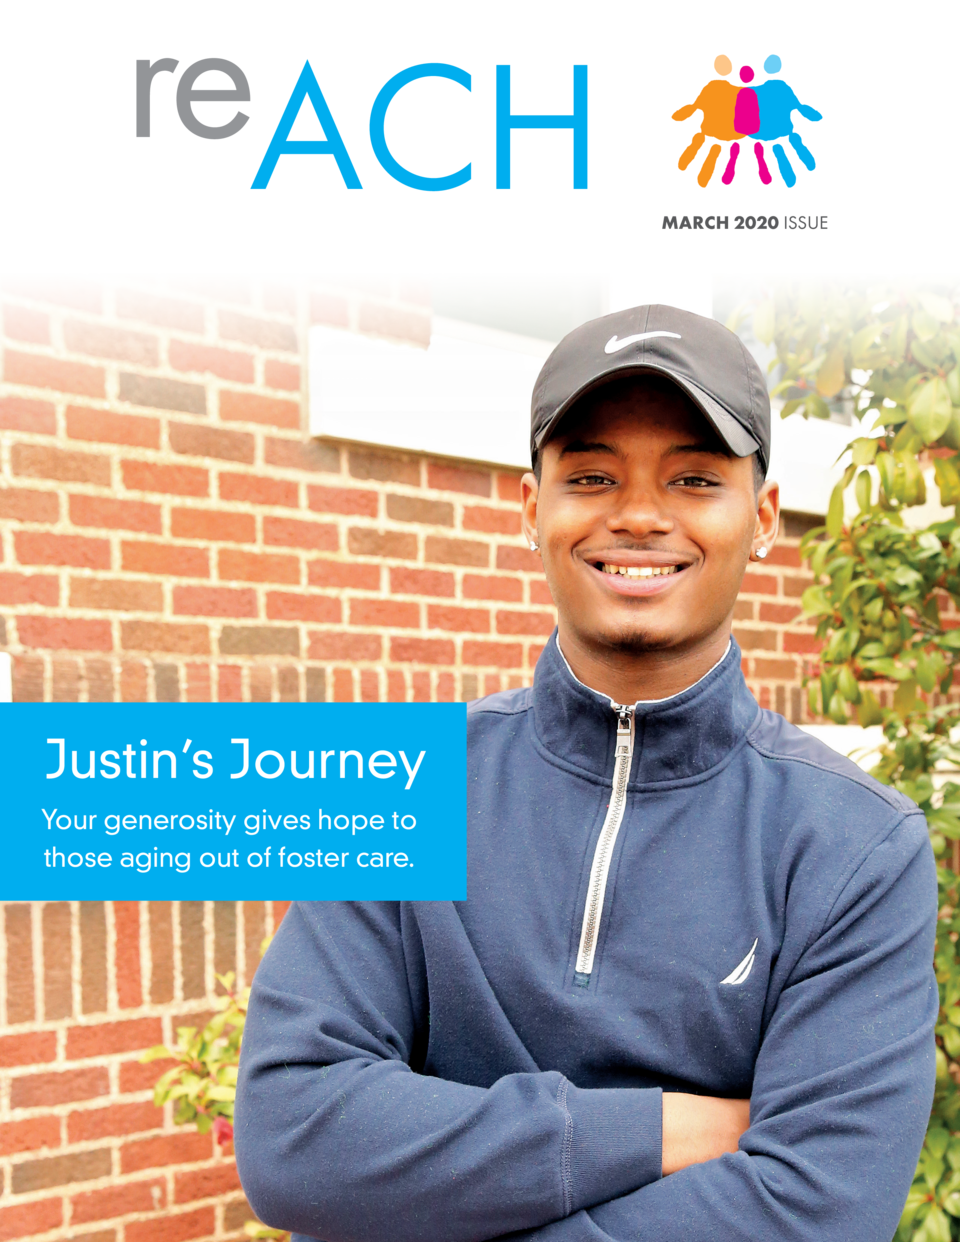 reACH  Justin   s Journey Your generosity gives hope to those aging out of foster care.  MARCH 2020 ISSUE